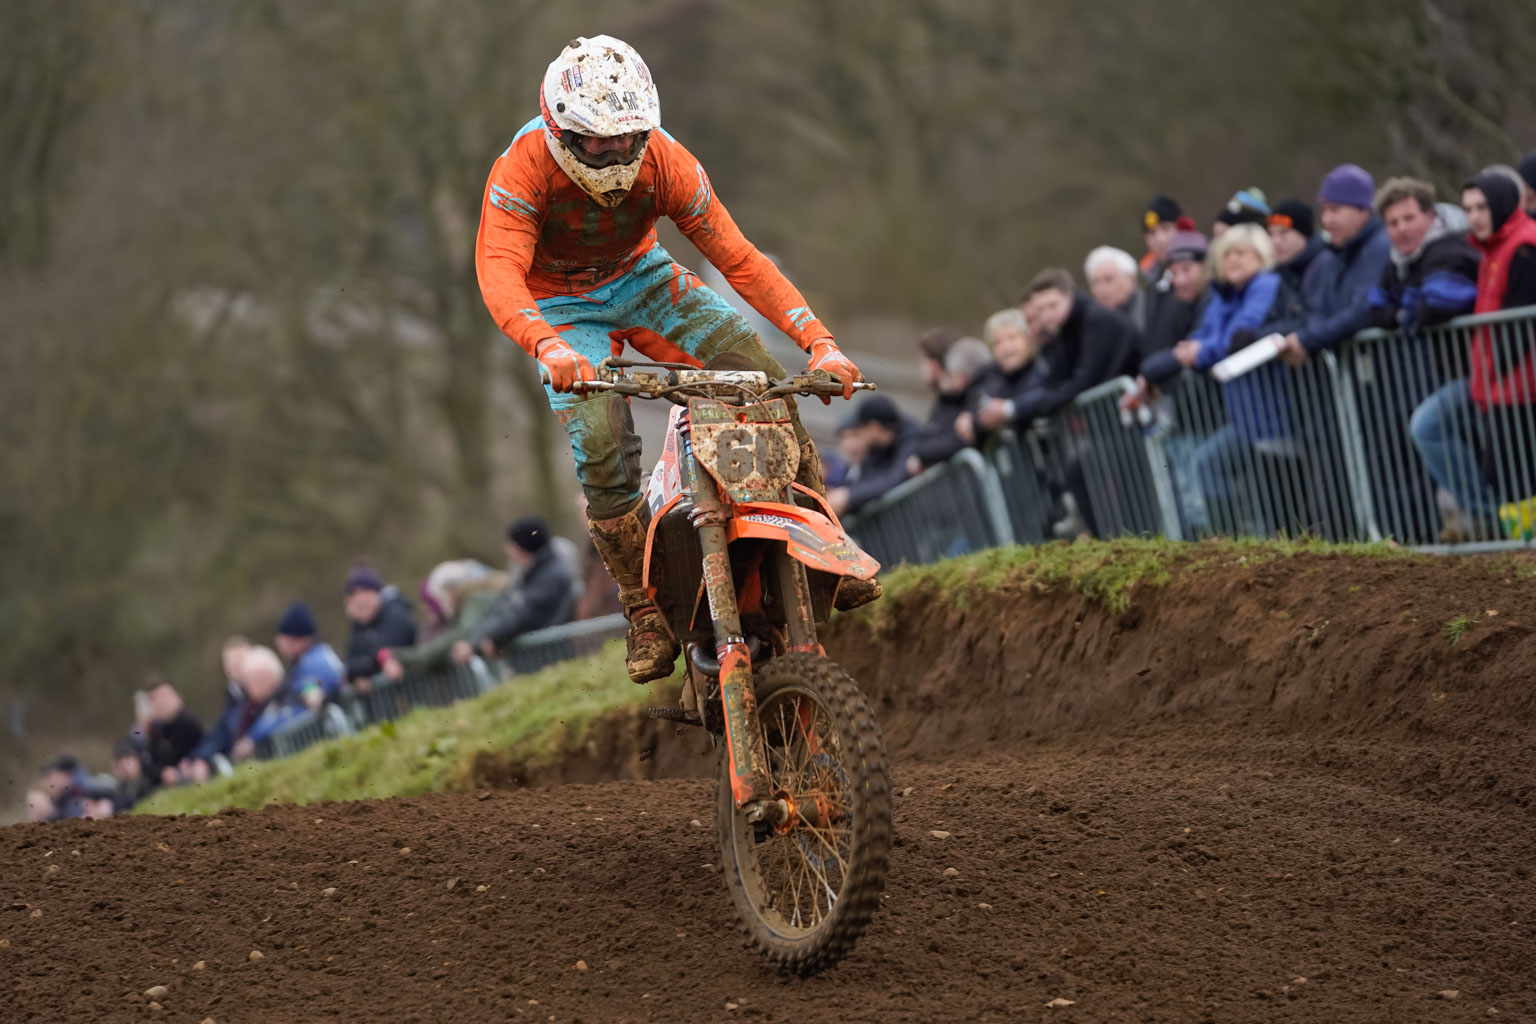 Brad Anderson in typical Ando style. Flat out, feet off the pegs, bike sidways and no fear. He was fourth overall in MX1